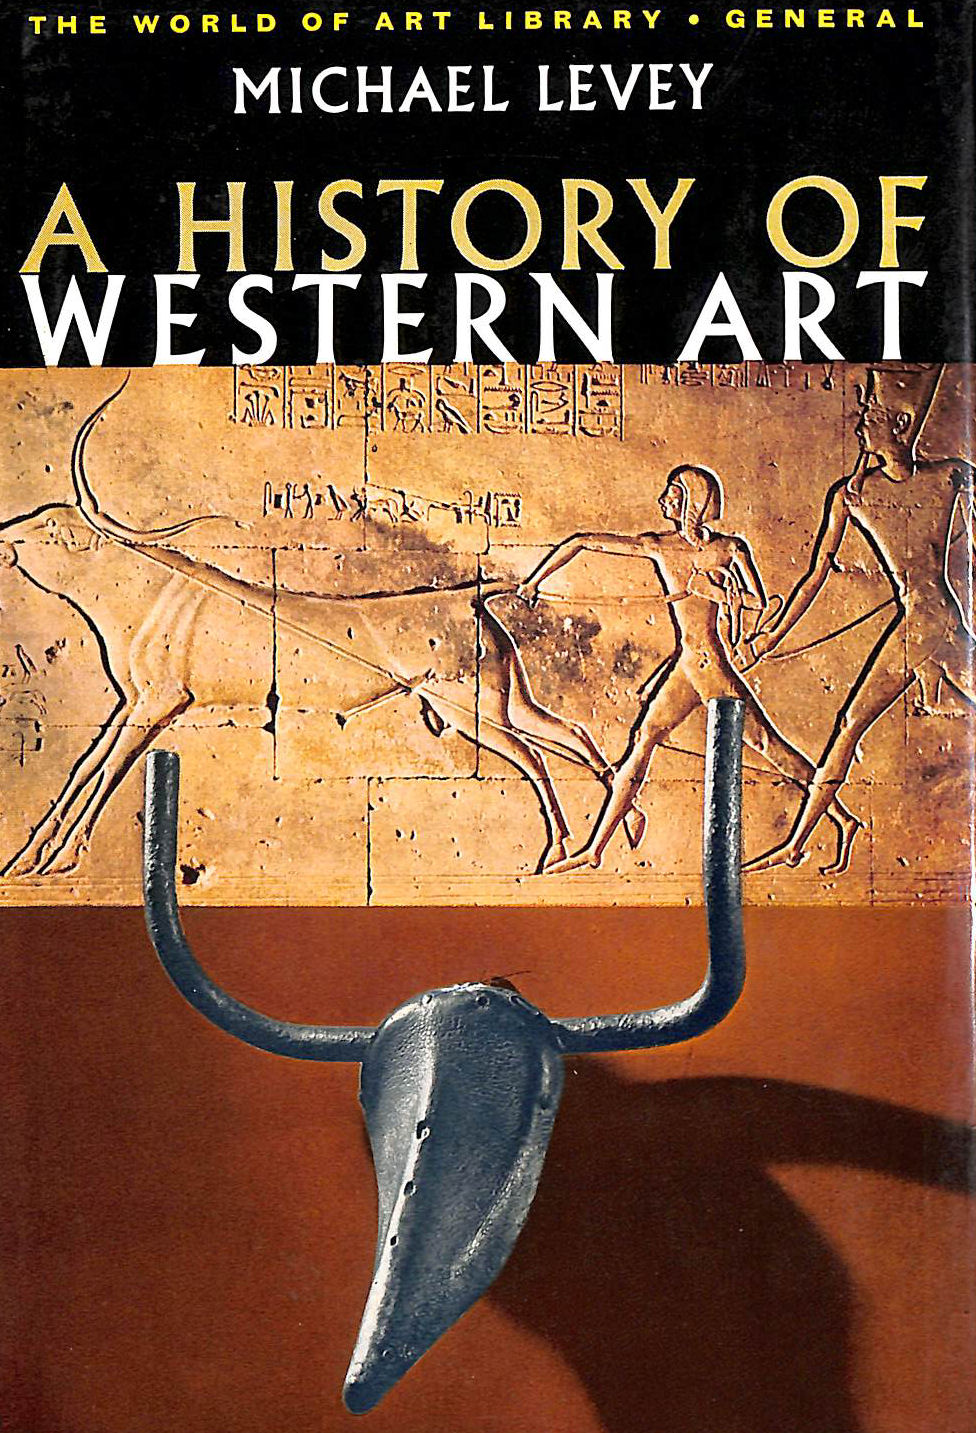 Image for A history of Western art (World of art library general)